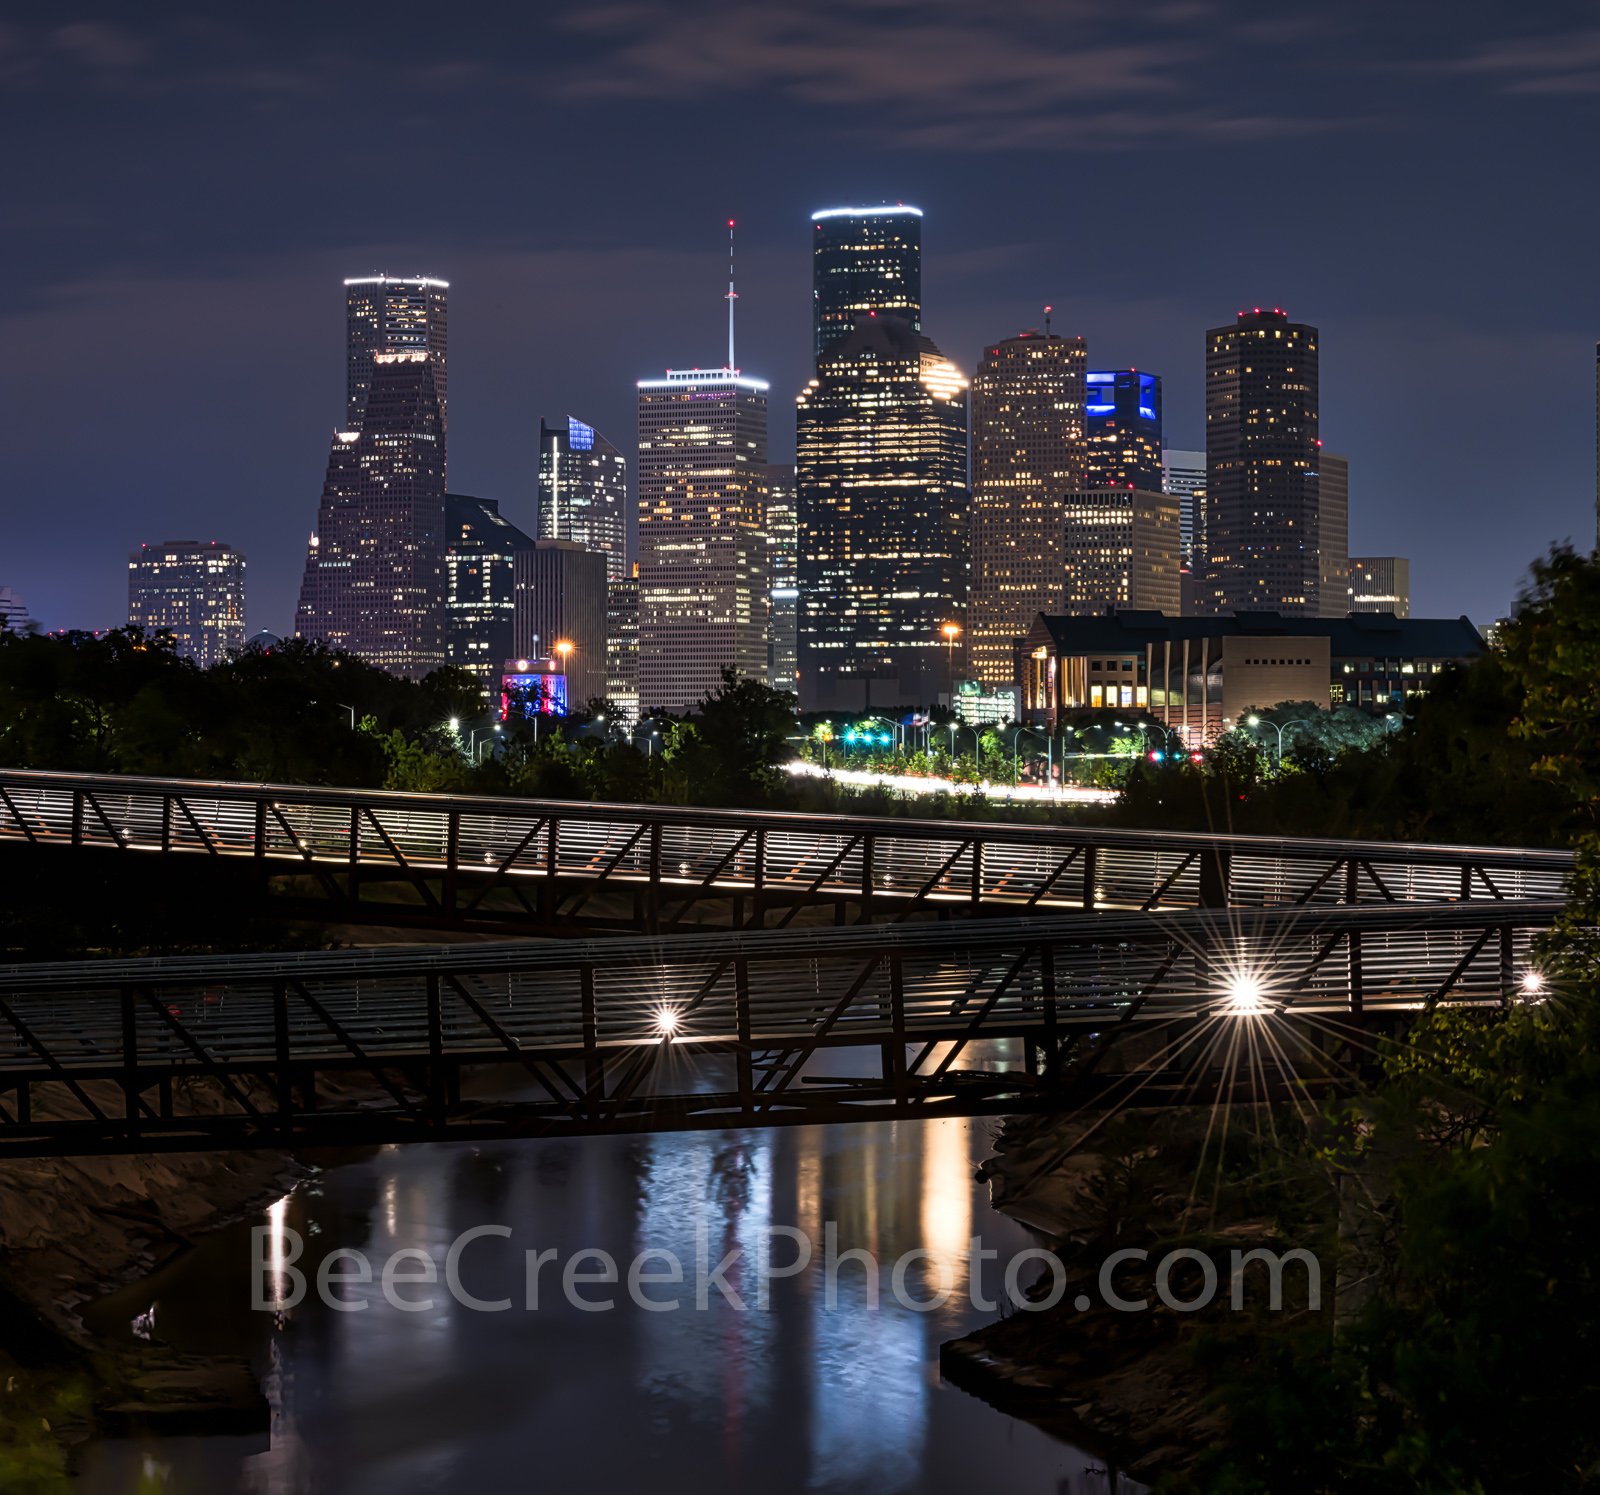 Houston skyline, Rosemont, pedestrian bridge, pano, panorama, buffalo Bayou, downtown,night, city, parks, cultural events, theater district, sports, music, events, performing arts, Houston stock,